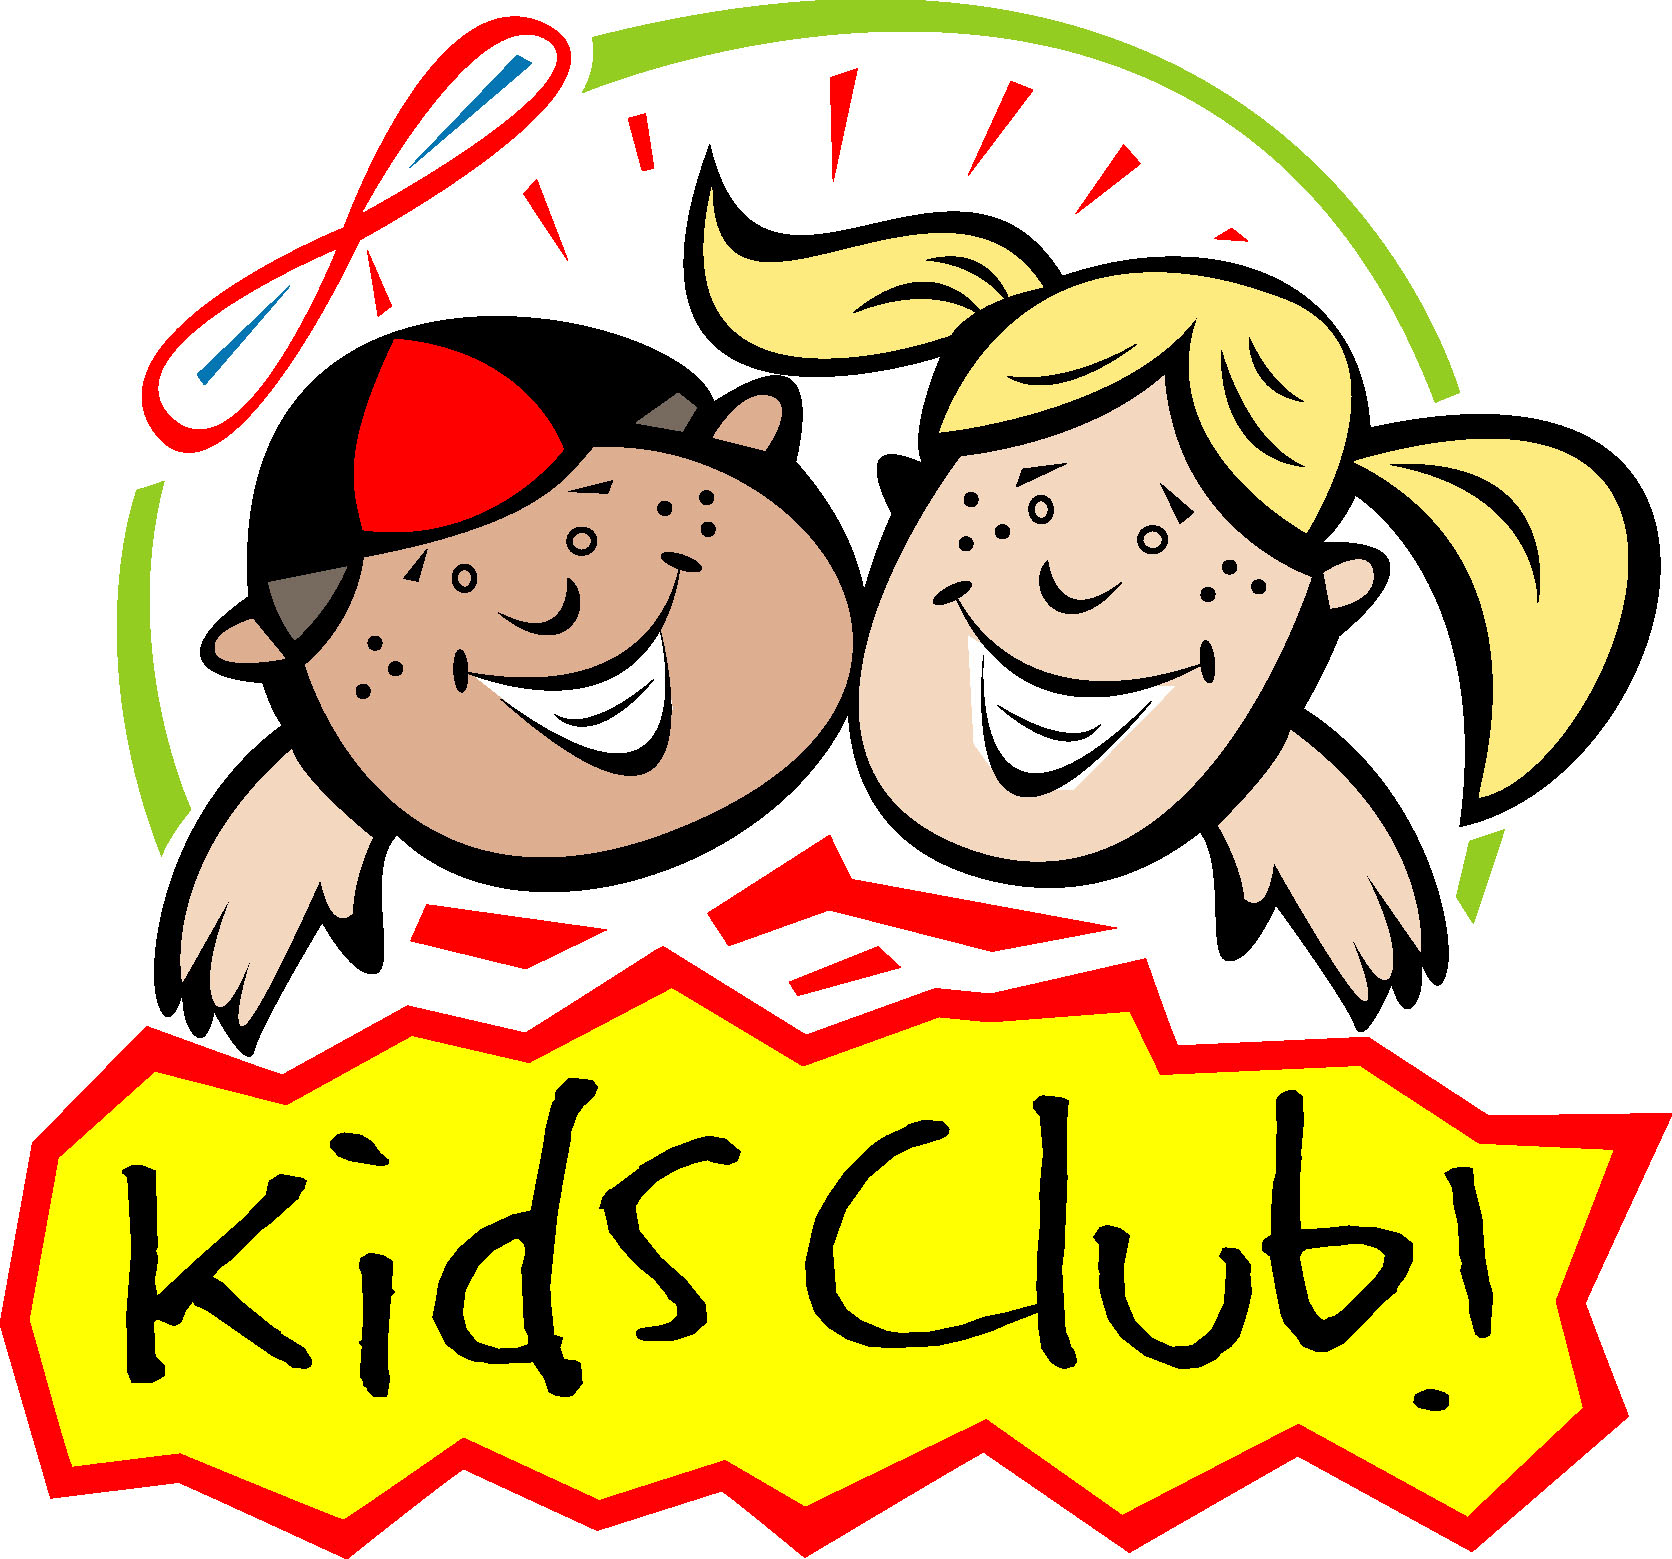 Kids Club meets monthly for ages 4 through 5th grade. This evening ...